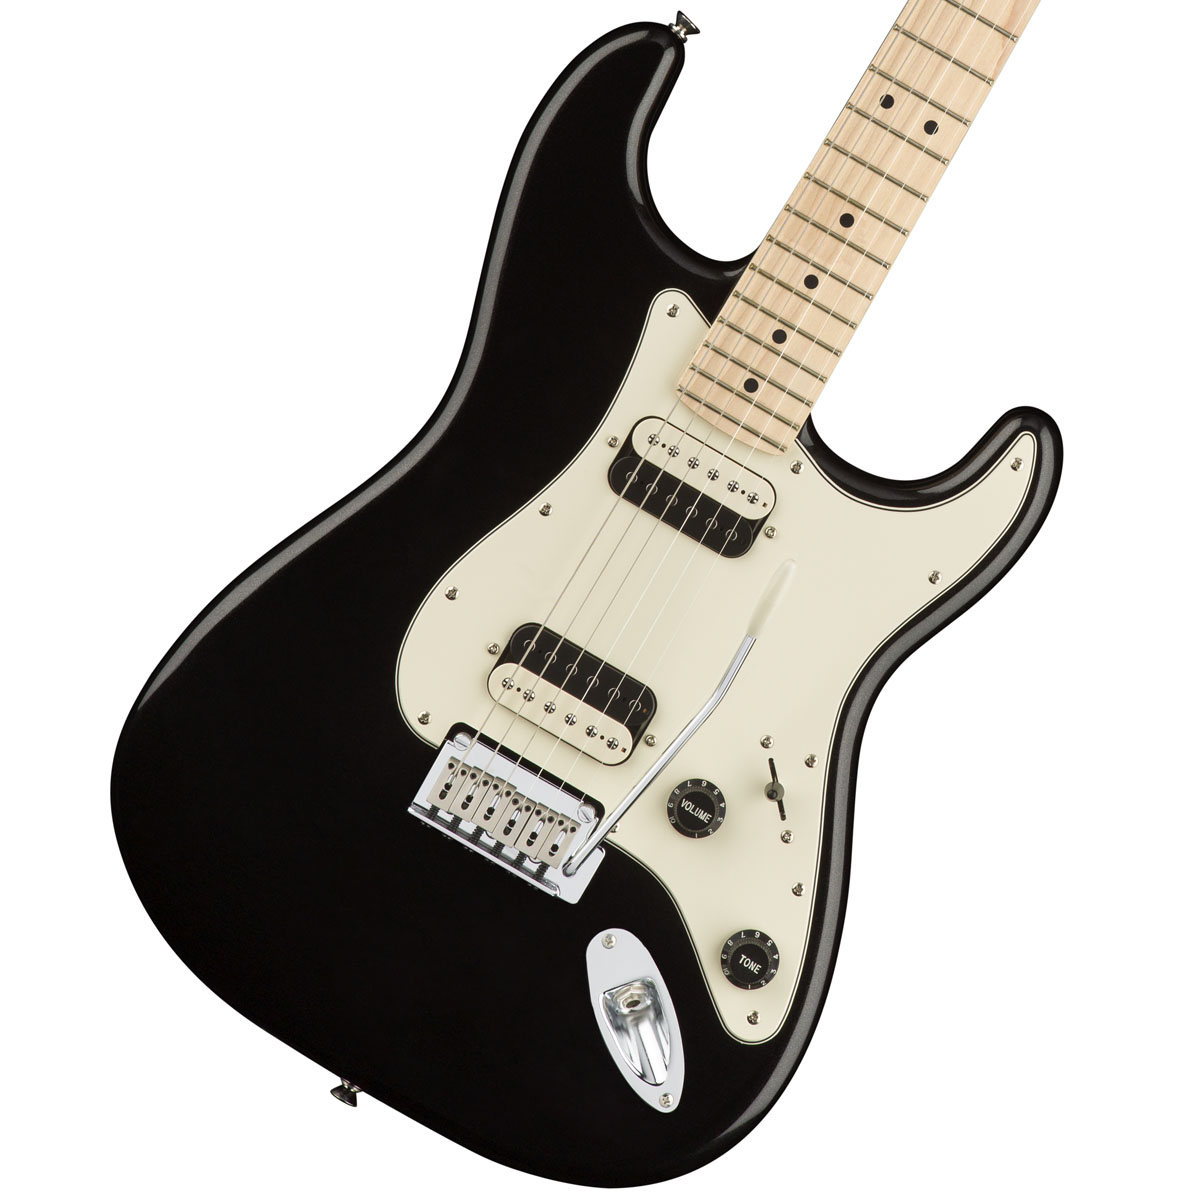 Squier by Fender / Contemporary Stratocaster HH Black Metallic Maple 【アウトレット新品特価】《アクセサリーセットプレゼント/+811164600》